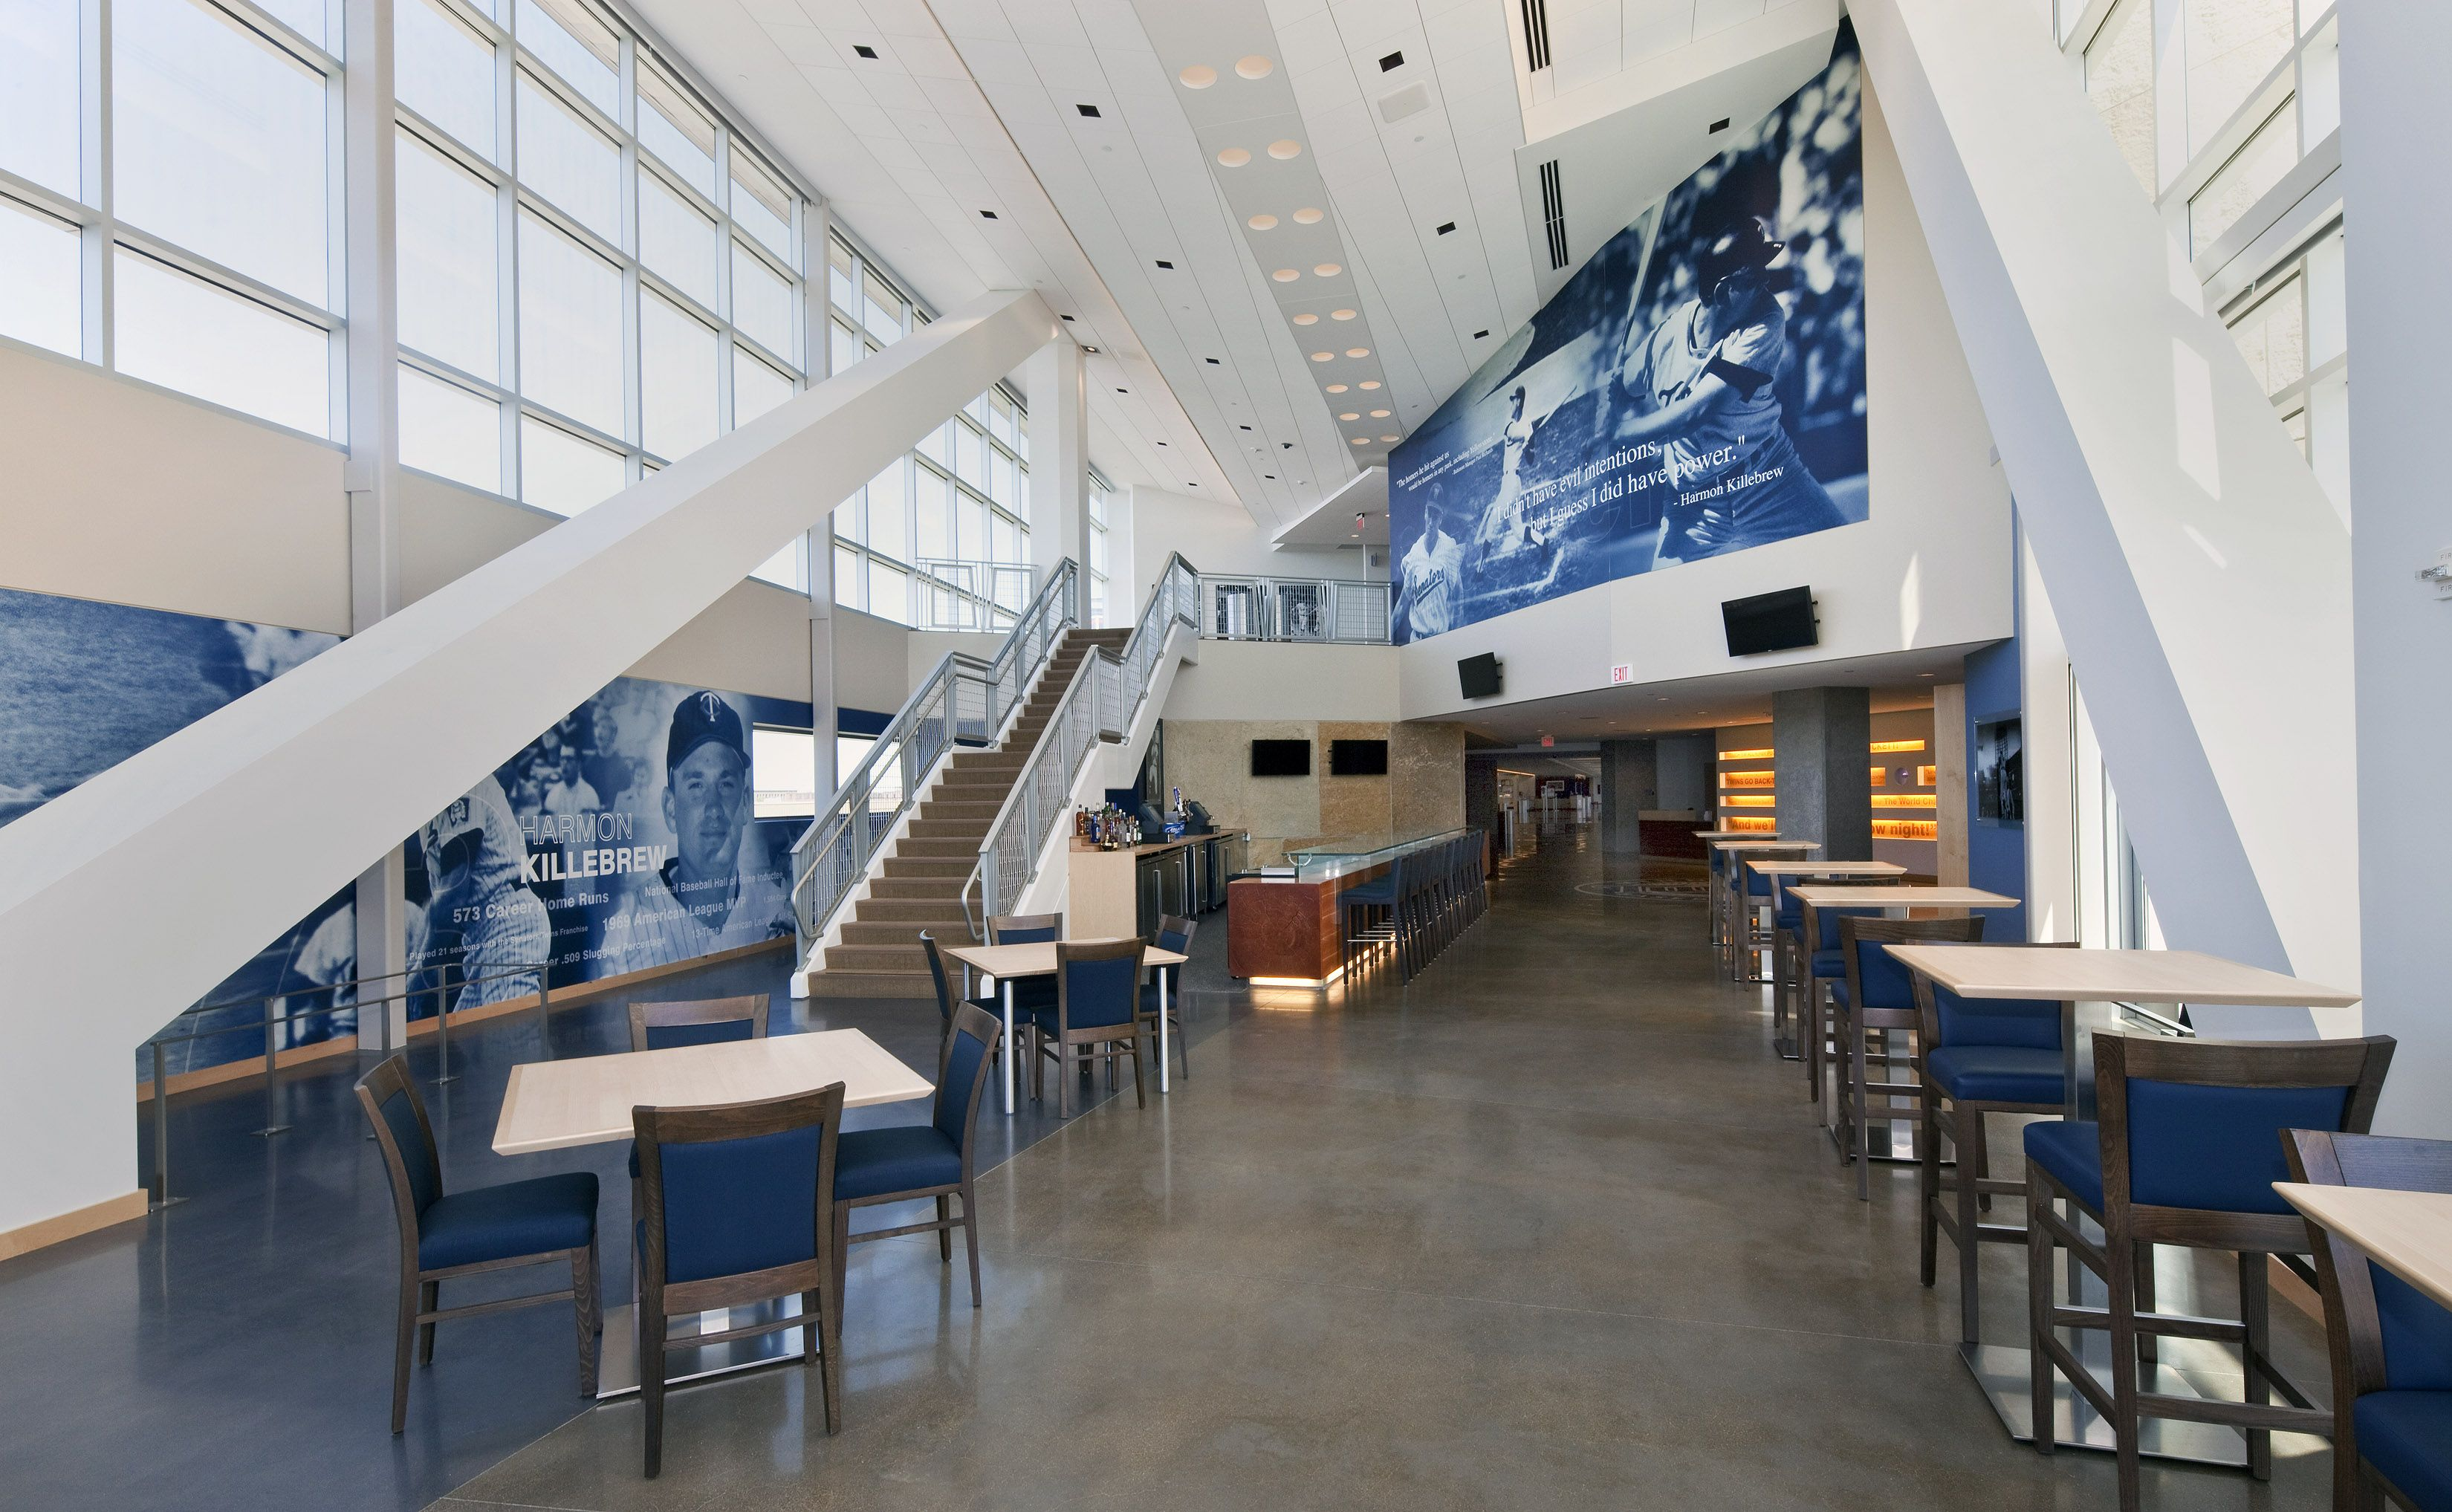 Target Commercial Interiors The Minnesota Twins Celebrated Their 50th Season In 2010 With A Return To Outdoor Baseball At Field